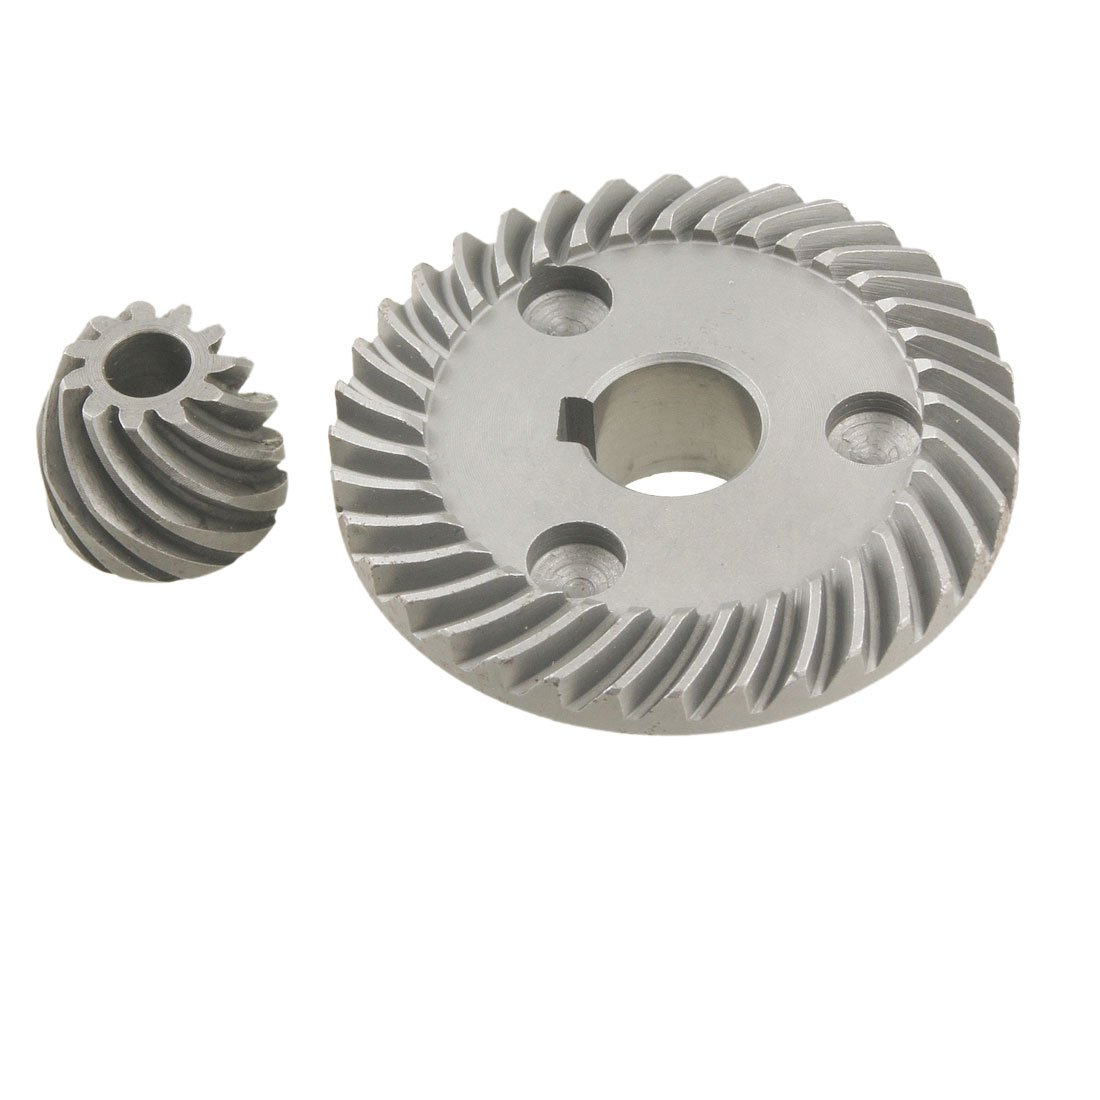 Uxcell Angle Grinder Rotor